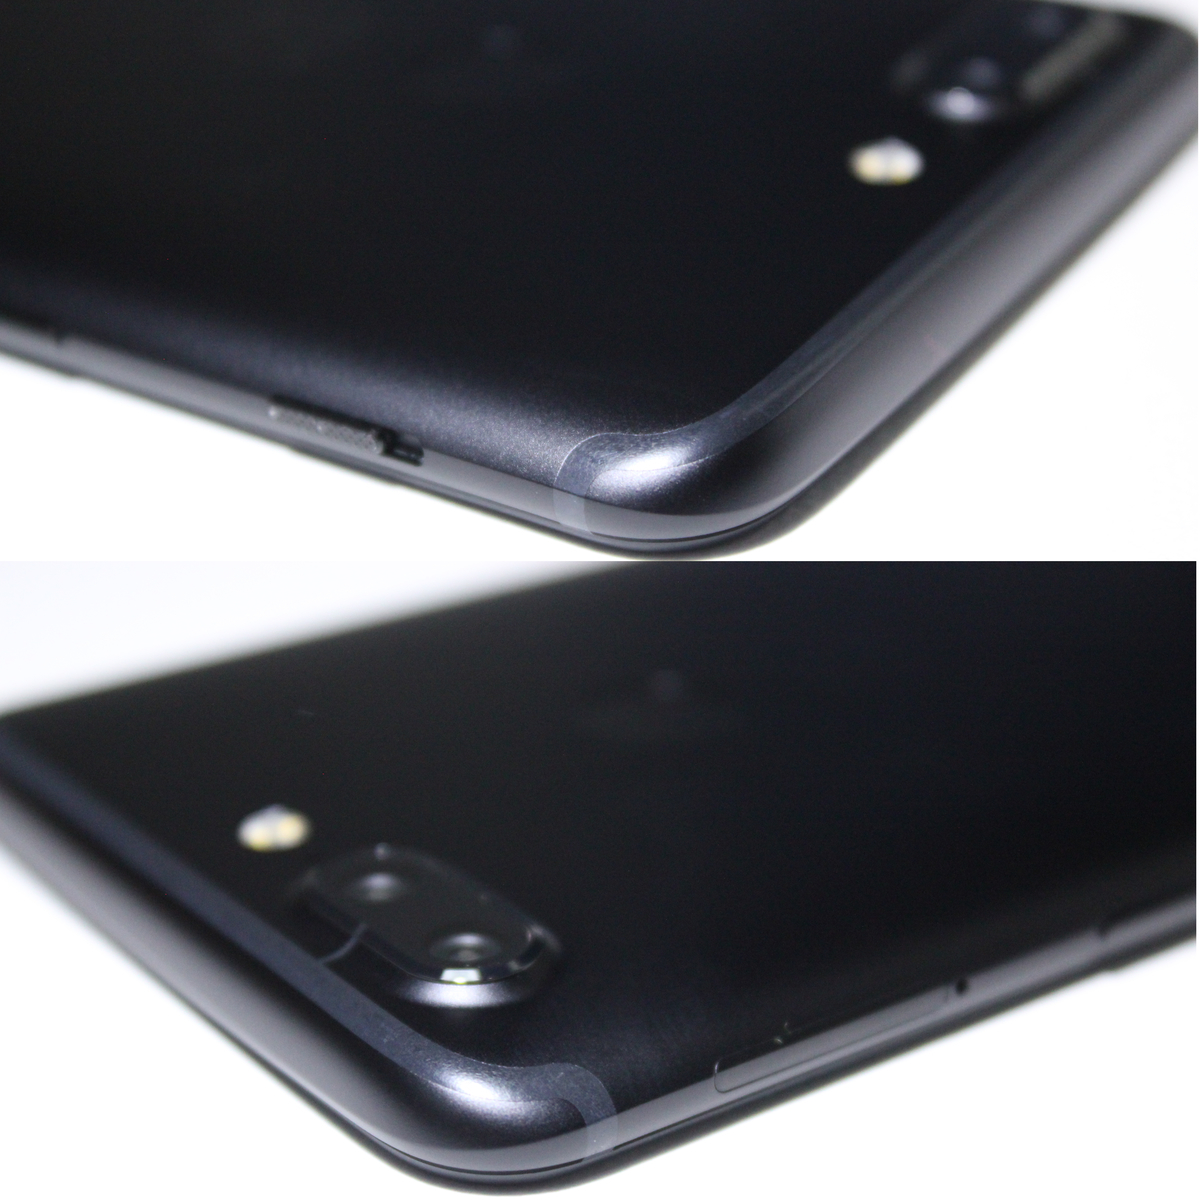 [ 8GB/128GB ] OnePlus 5T A5010 SIMフリー Android 8 アンドロイド Android8 アンドロイド8 /1_画像5